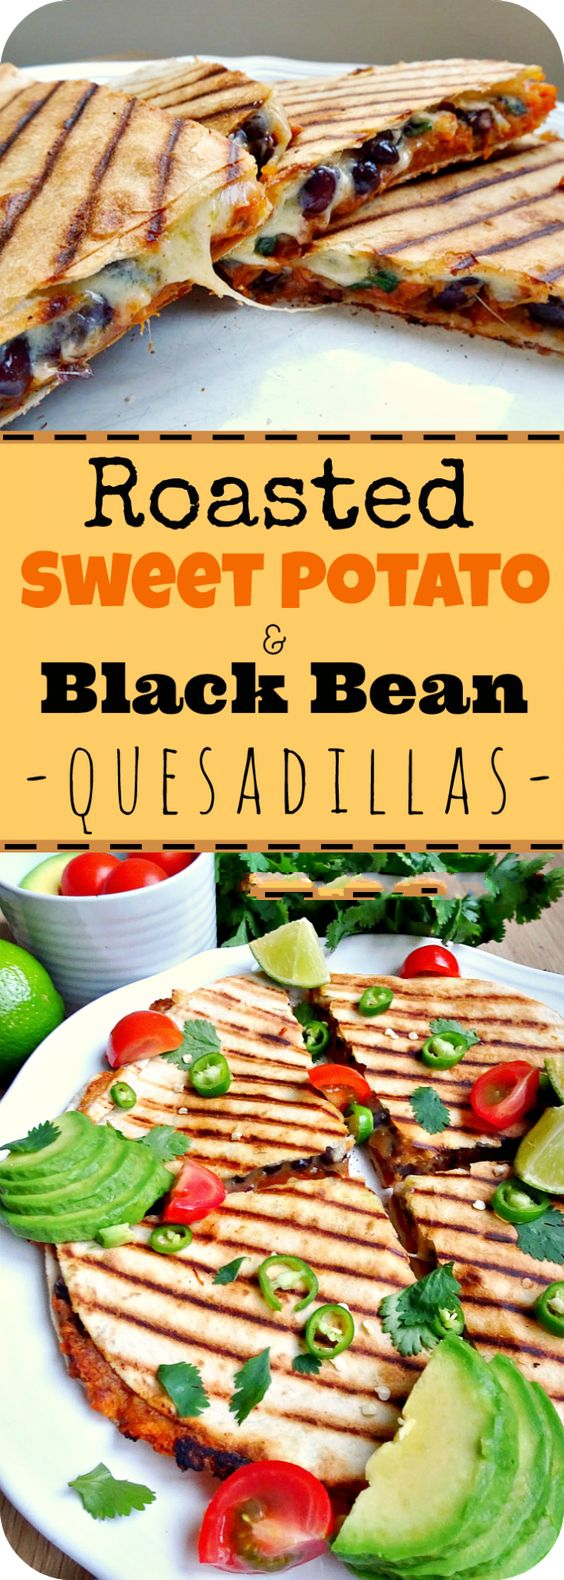 Roasted Sweet Potato and Black Bean Quesadillas are the best vegetarian quesadillas you'll ever taste. So easy to make and most importantly incredibly delicious and filling!